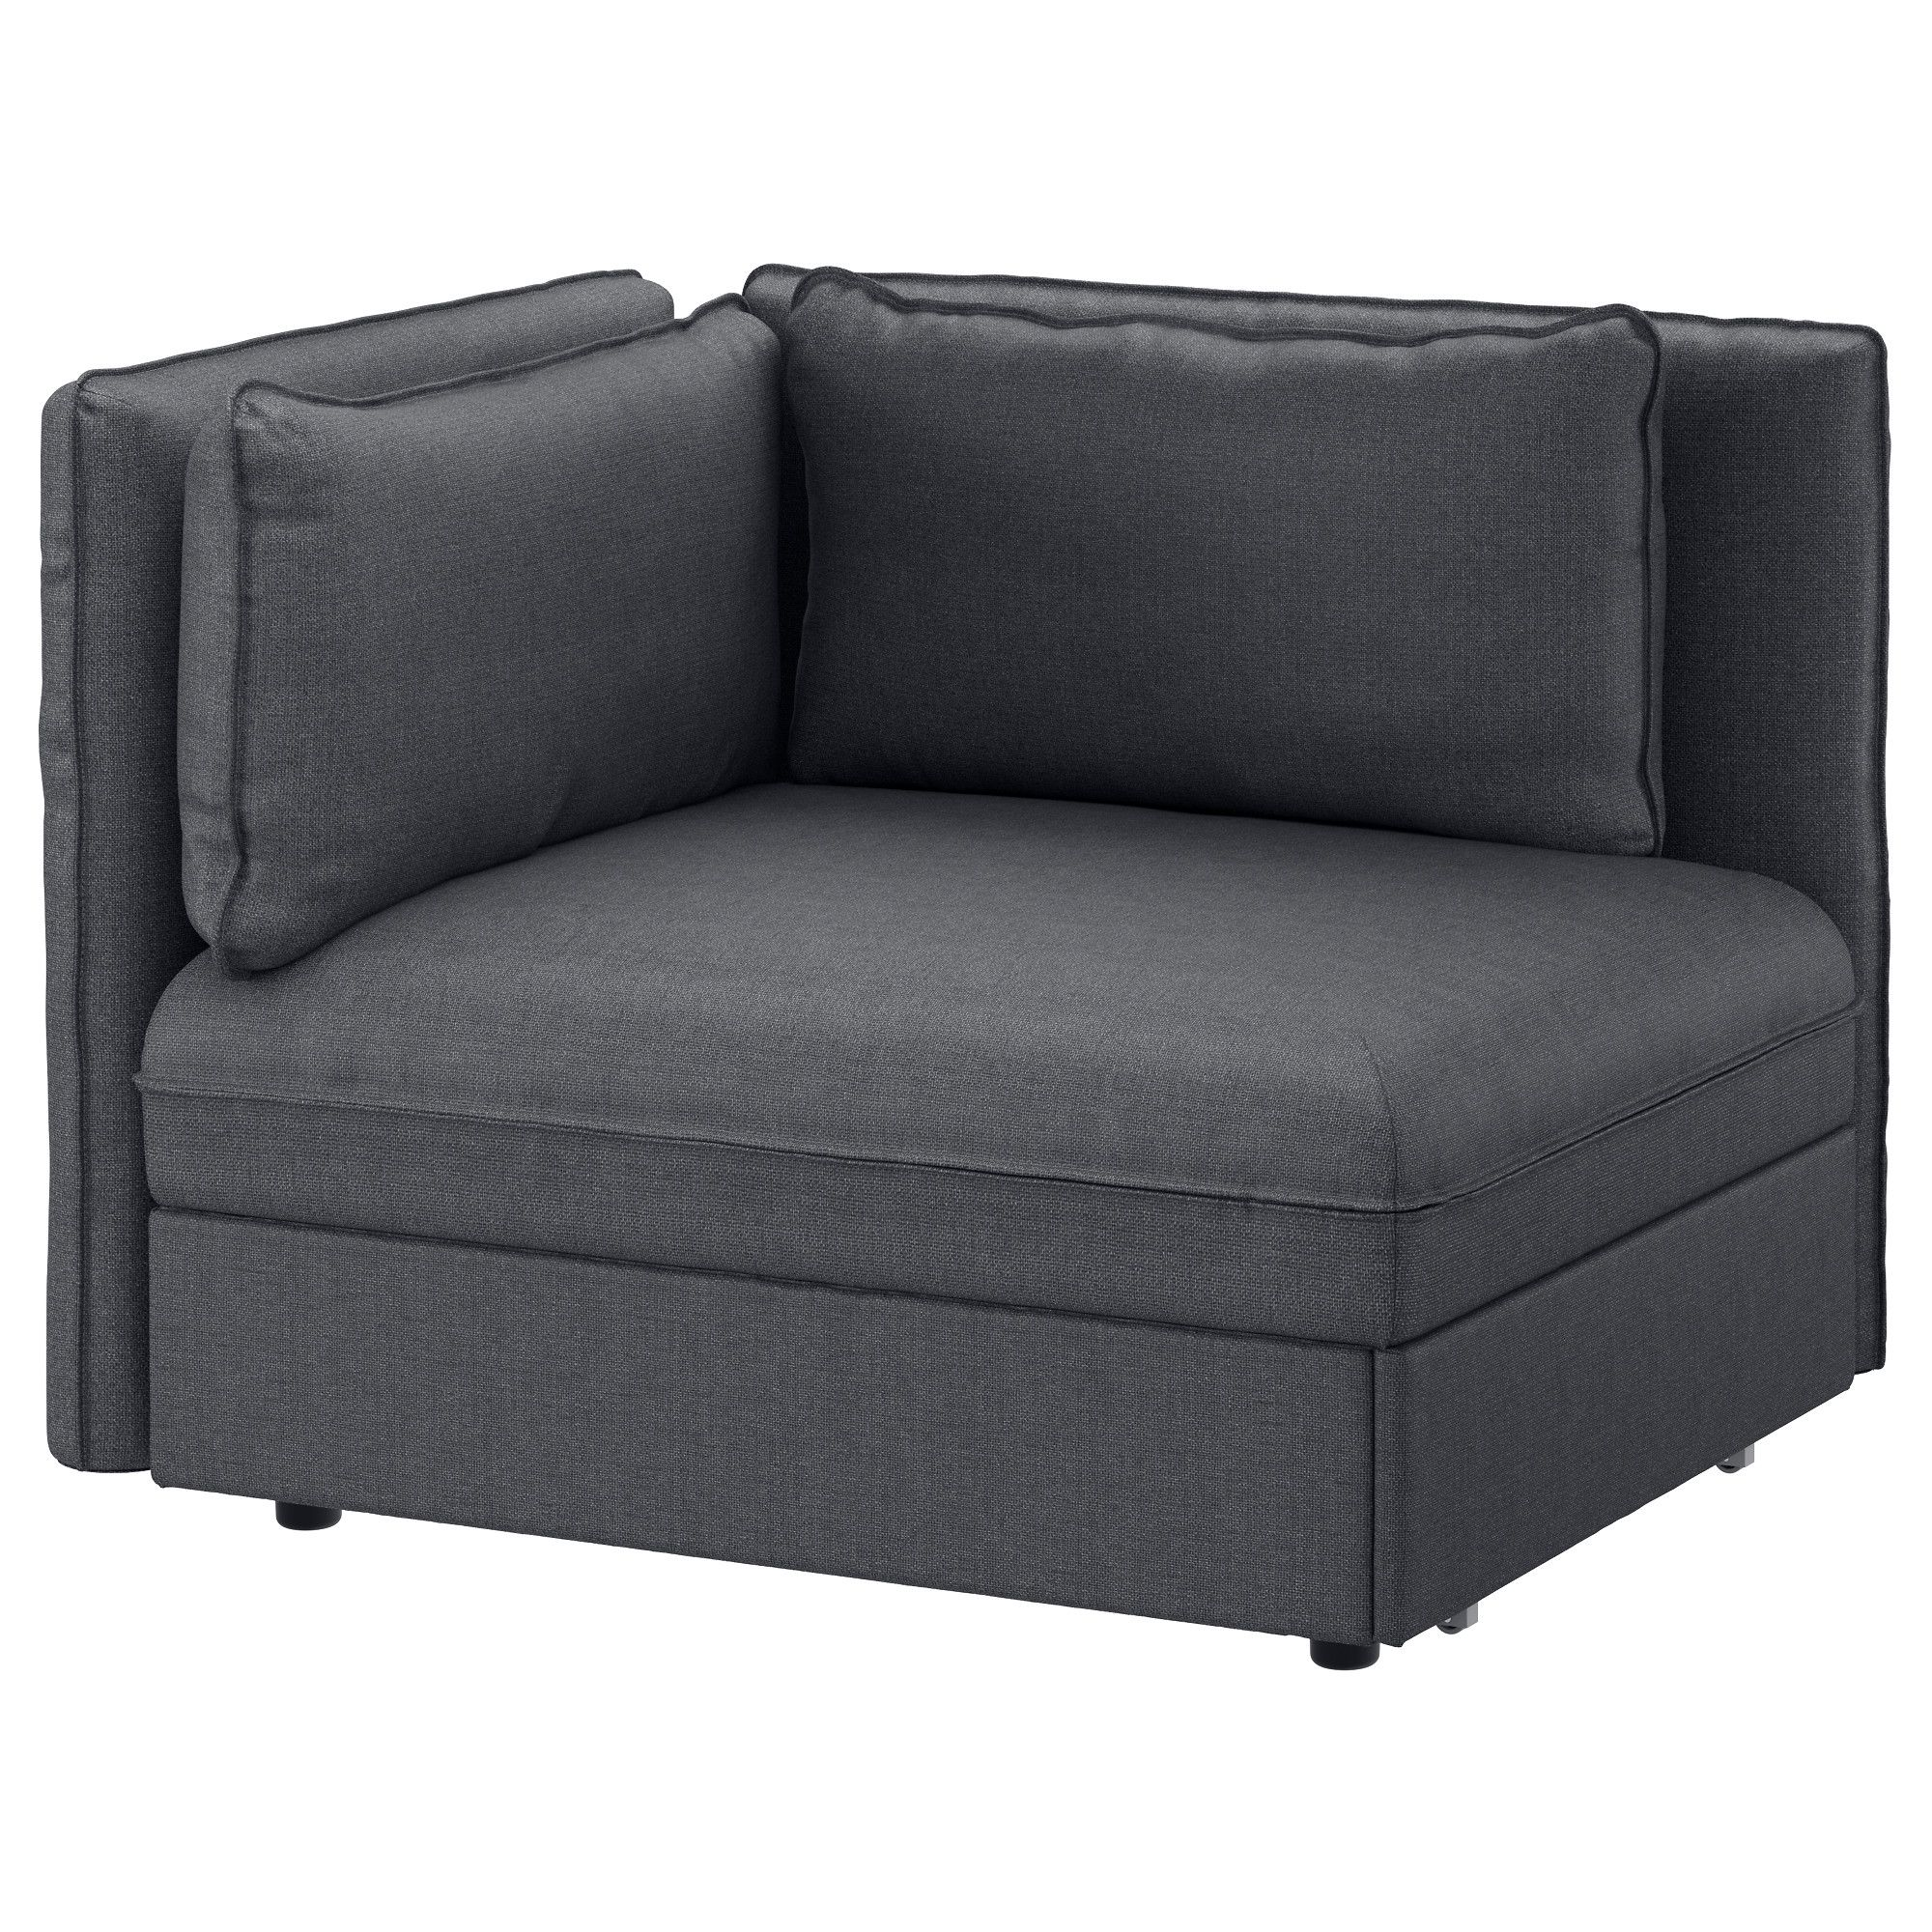 Shop For Furniture Home Accessories More Vallentuna Ikea Fabric Sofas Single Sofa Bed